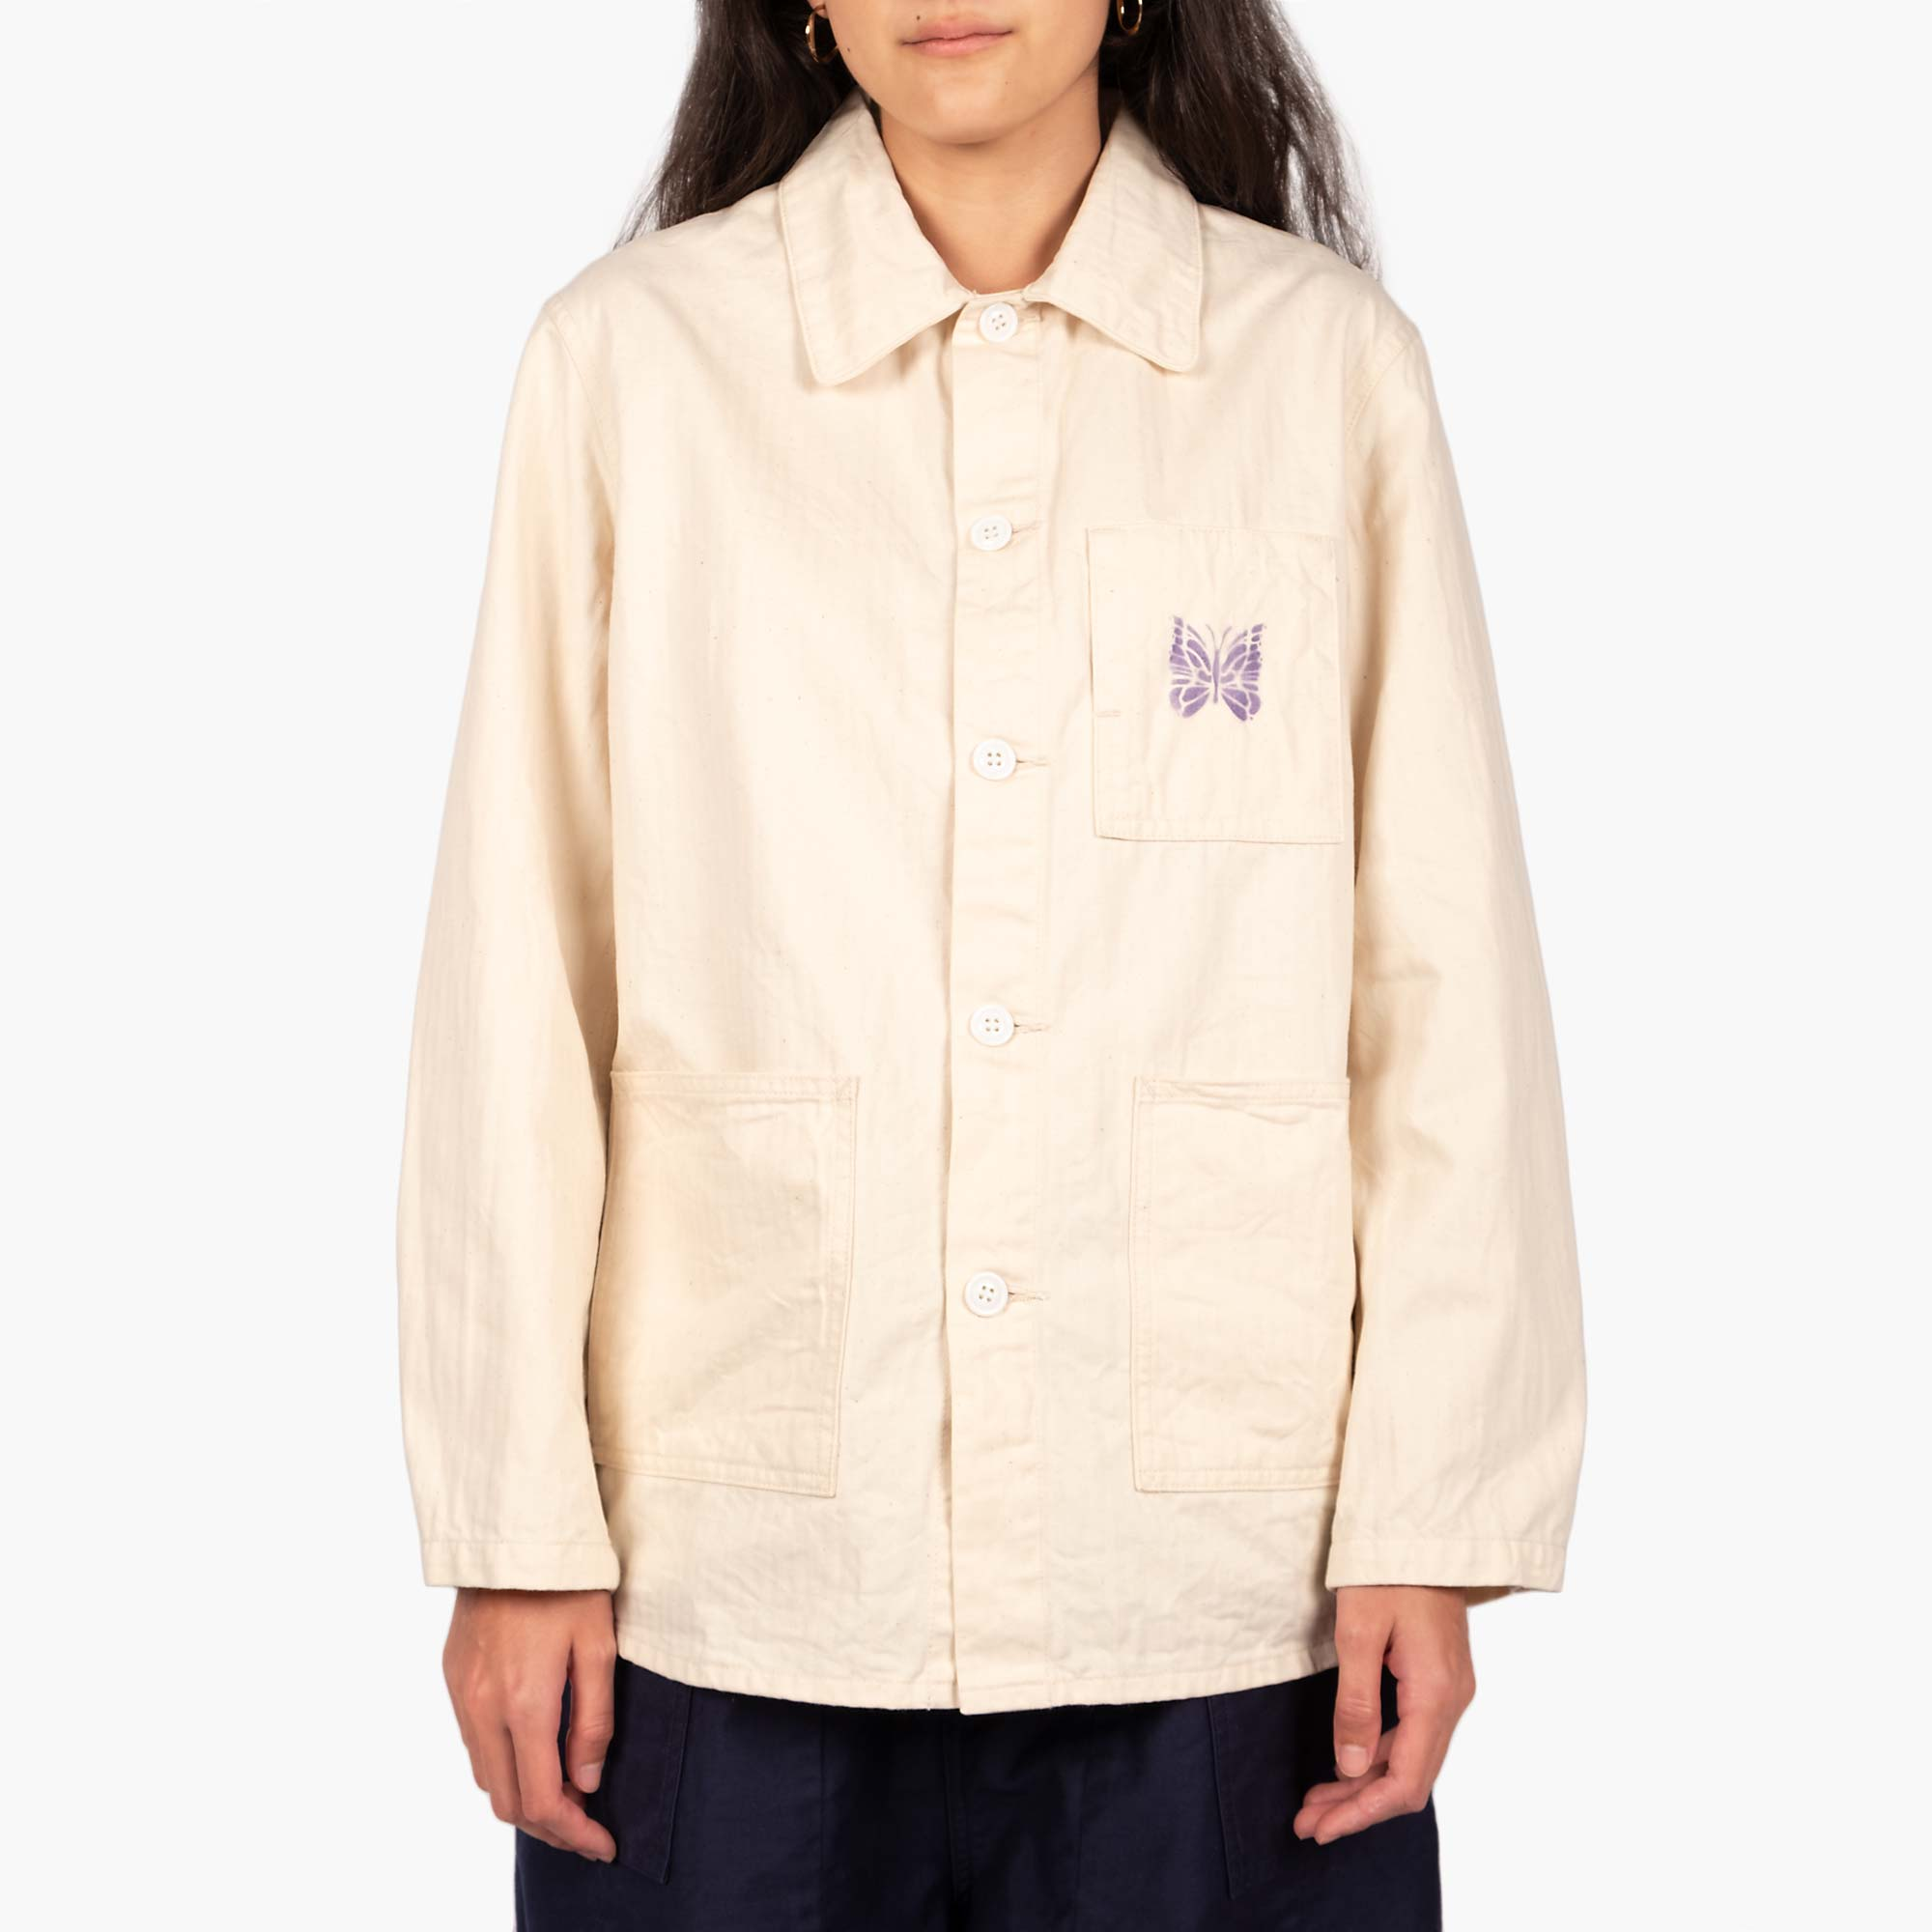 Needles Women's D.N. Coverall Jacket - Off White 1